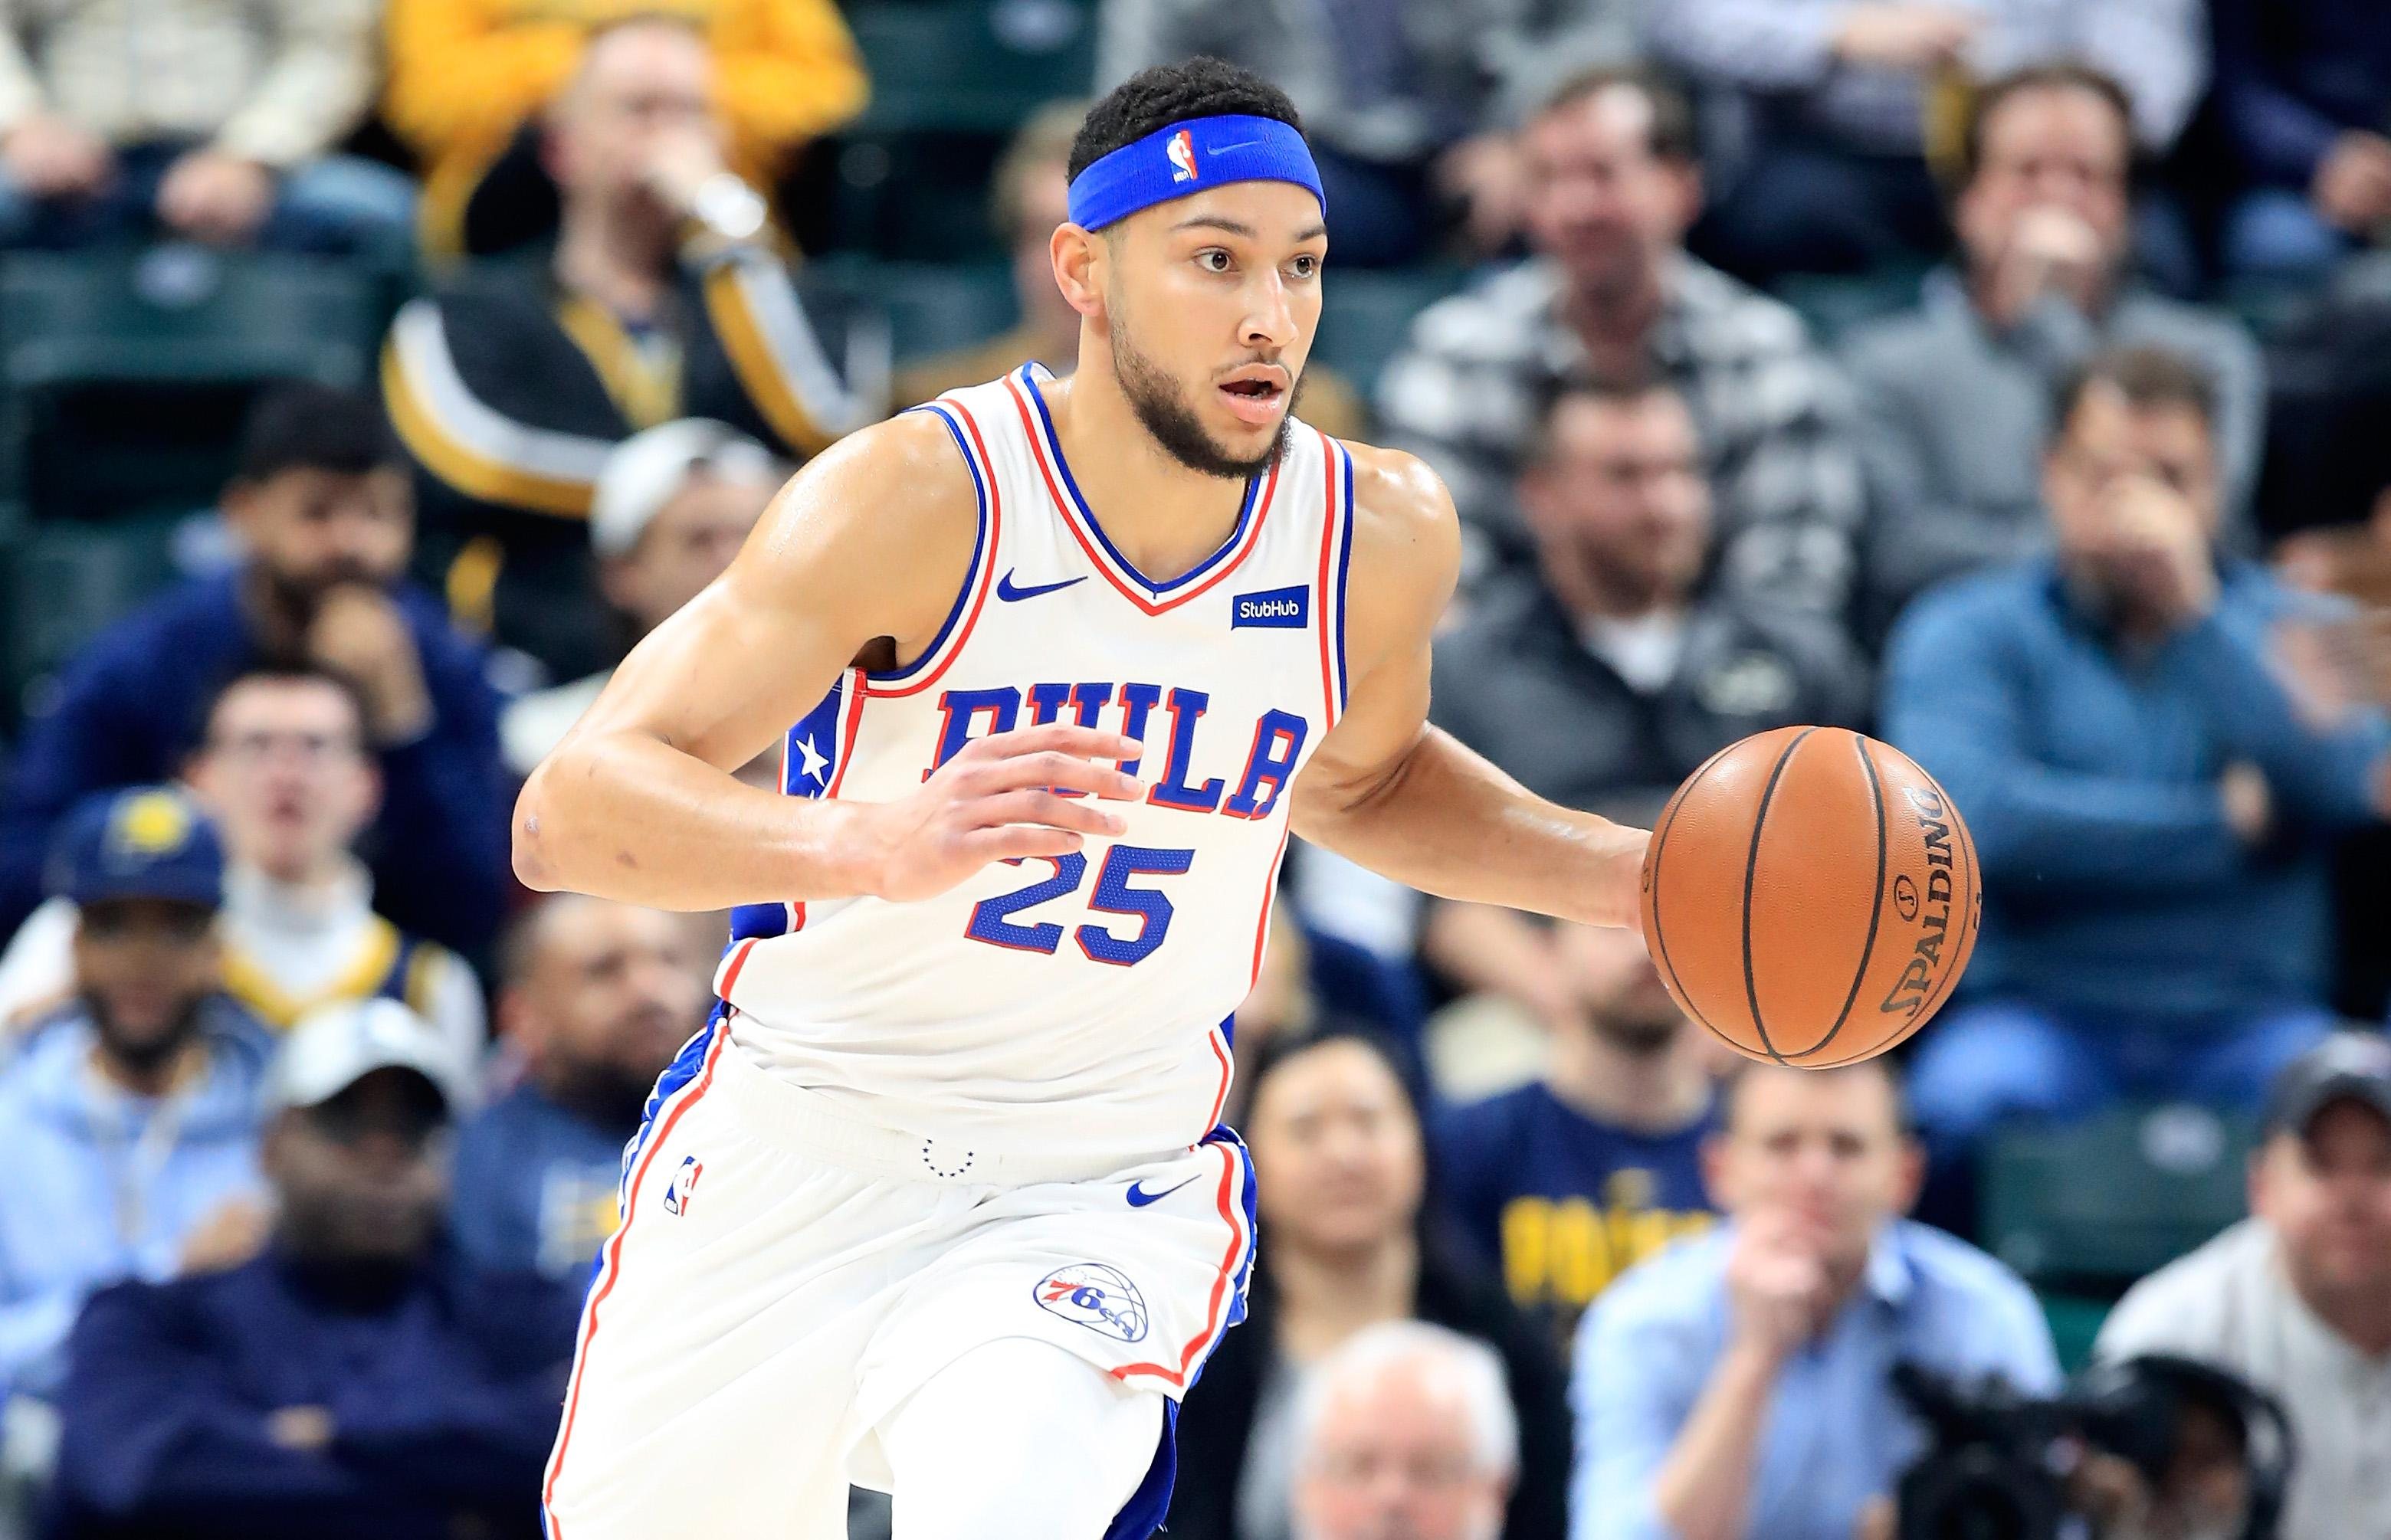 INDIANAPOLIS, IN - JANUARY 17:  Ben Simmons #25 of the Philadelphia 76ers dribbles the ball against the Indiana Pacers at Bankers Life Fieldhouse on January 17, 2019 in Indianapolis, Indiana.   NOTE TO USER: User expressly acknowledges and agrees that, by downloading and or using this photograph, User is consenting to the terms and conditions of the Getty Images License Agreement.  (Photo by Andy Lyons/Getty Images)